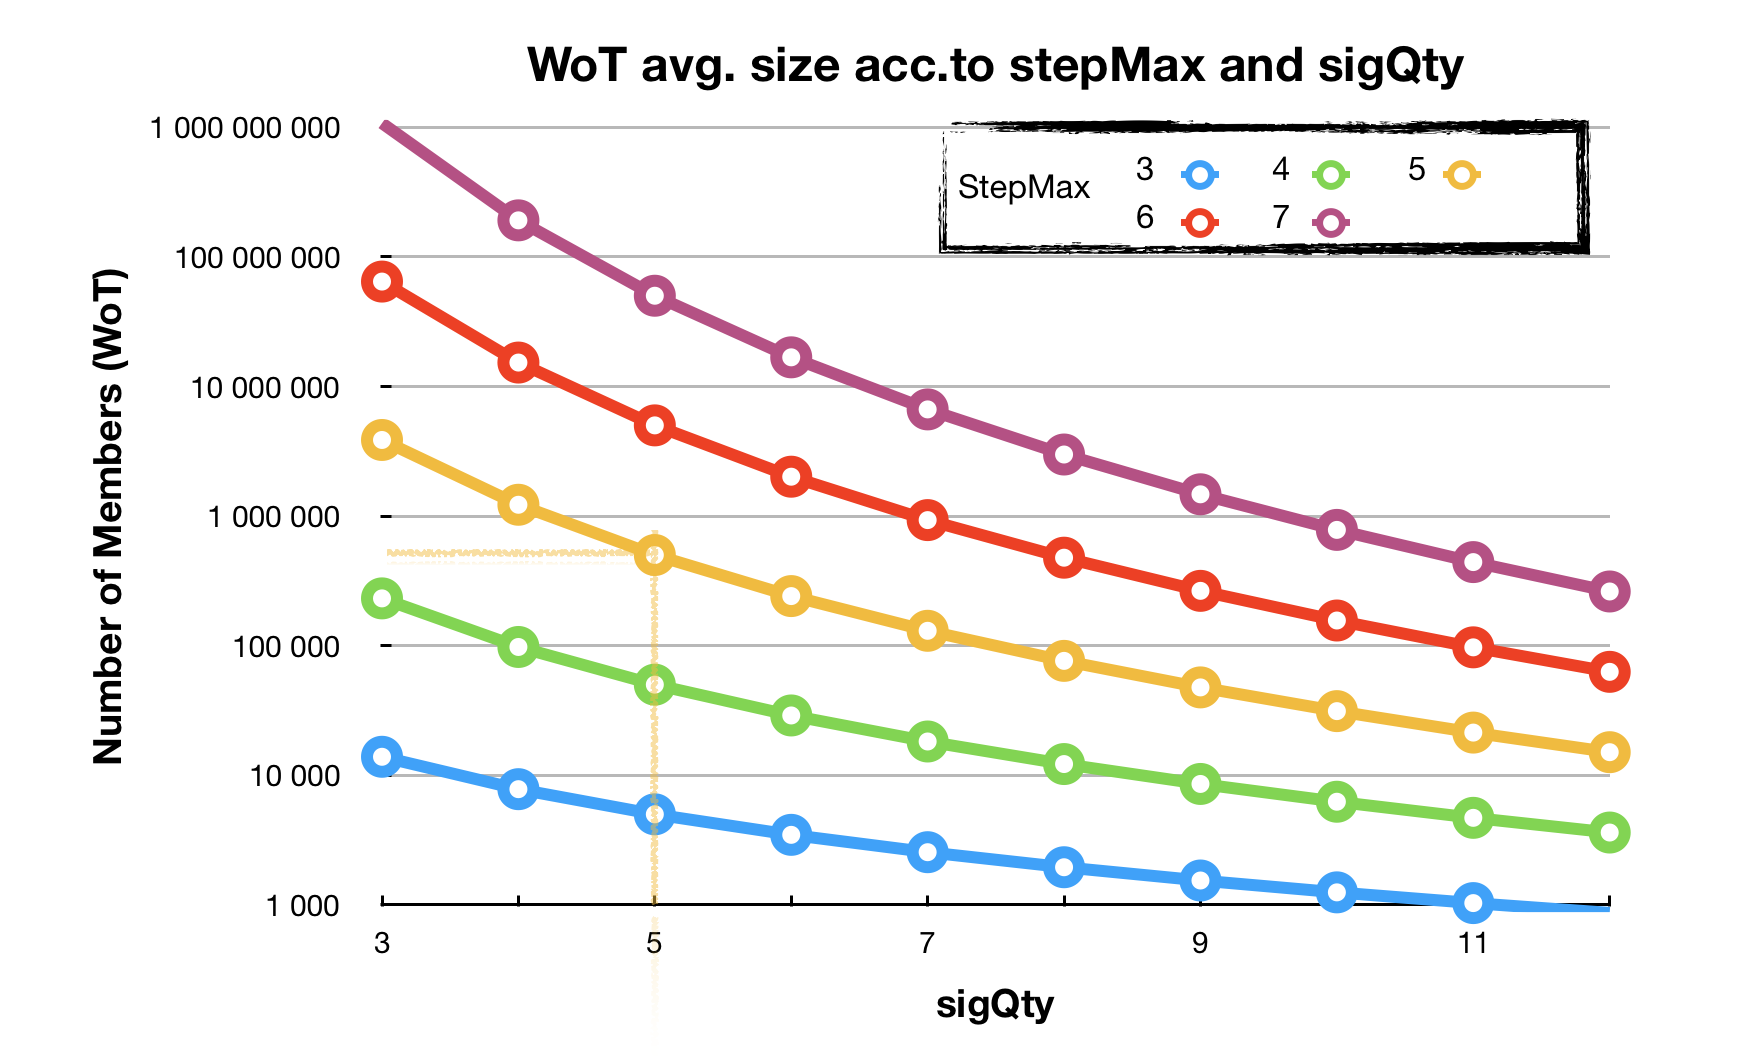 content/images/intro-wot/graph-WoTmoy.png